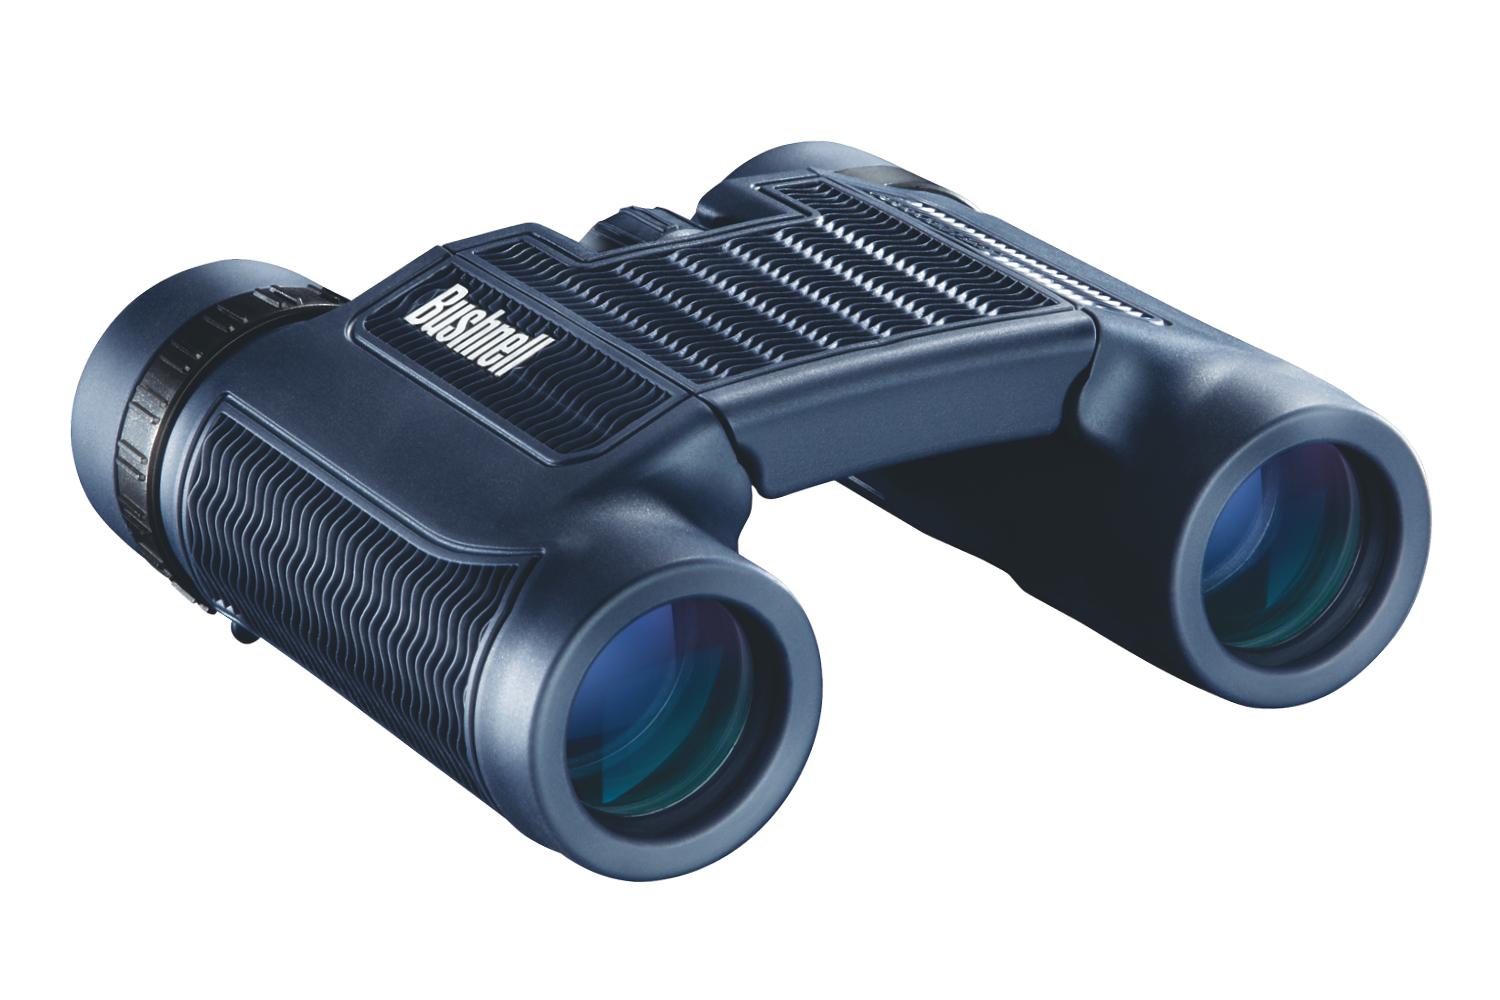 Бинокль Bushnell H2O ROOF 10x25 carl zeiss 10x25 t conquest compact бинокль